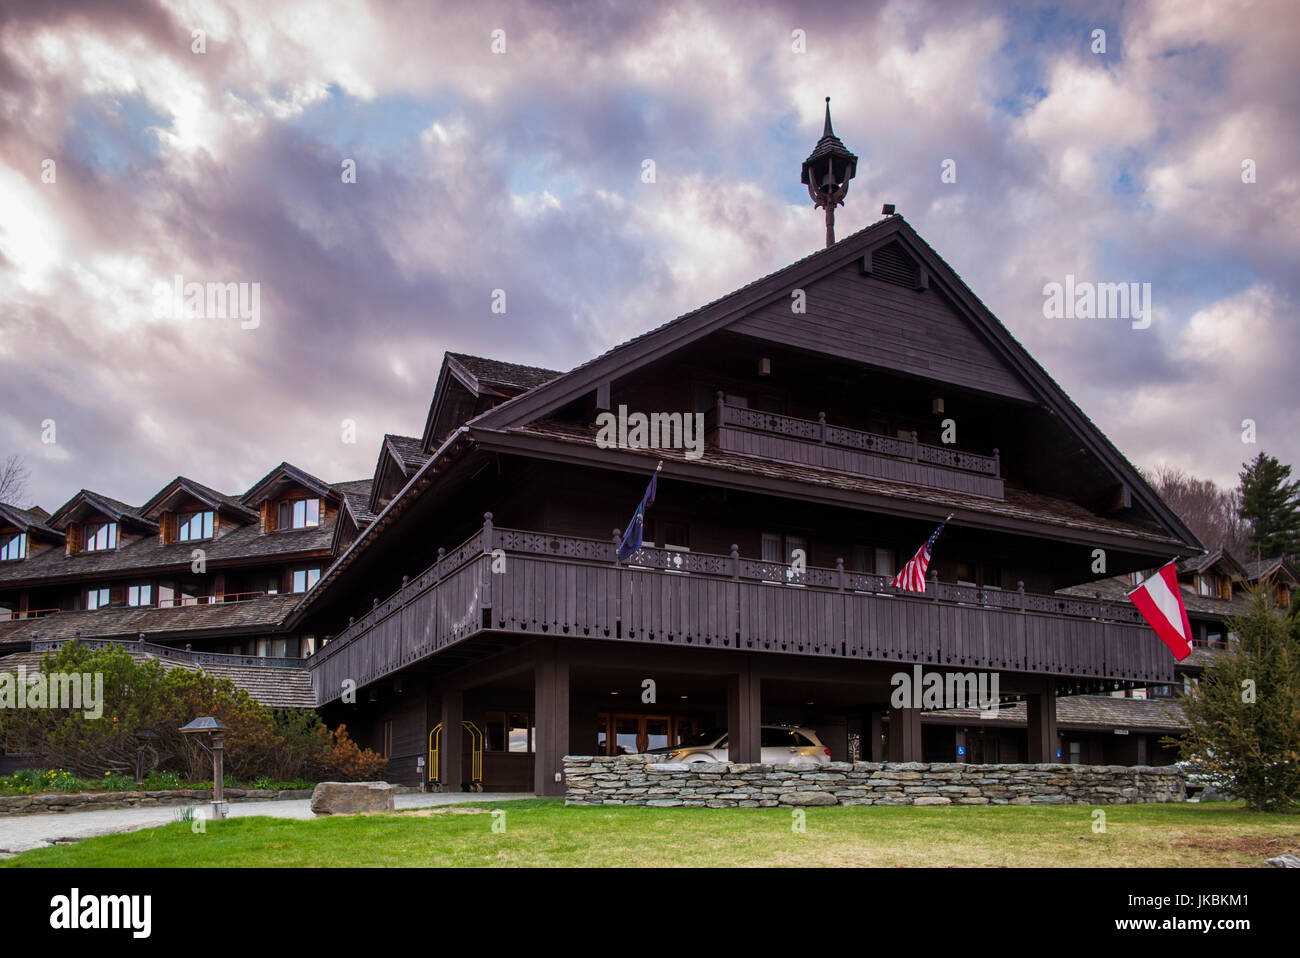 USA, Vermont, Trapp Family Lodge, hotel owned by the von Trapp Family - Stock Image